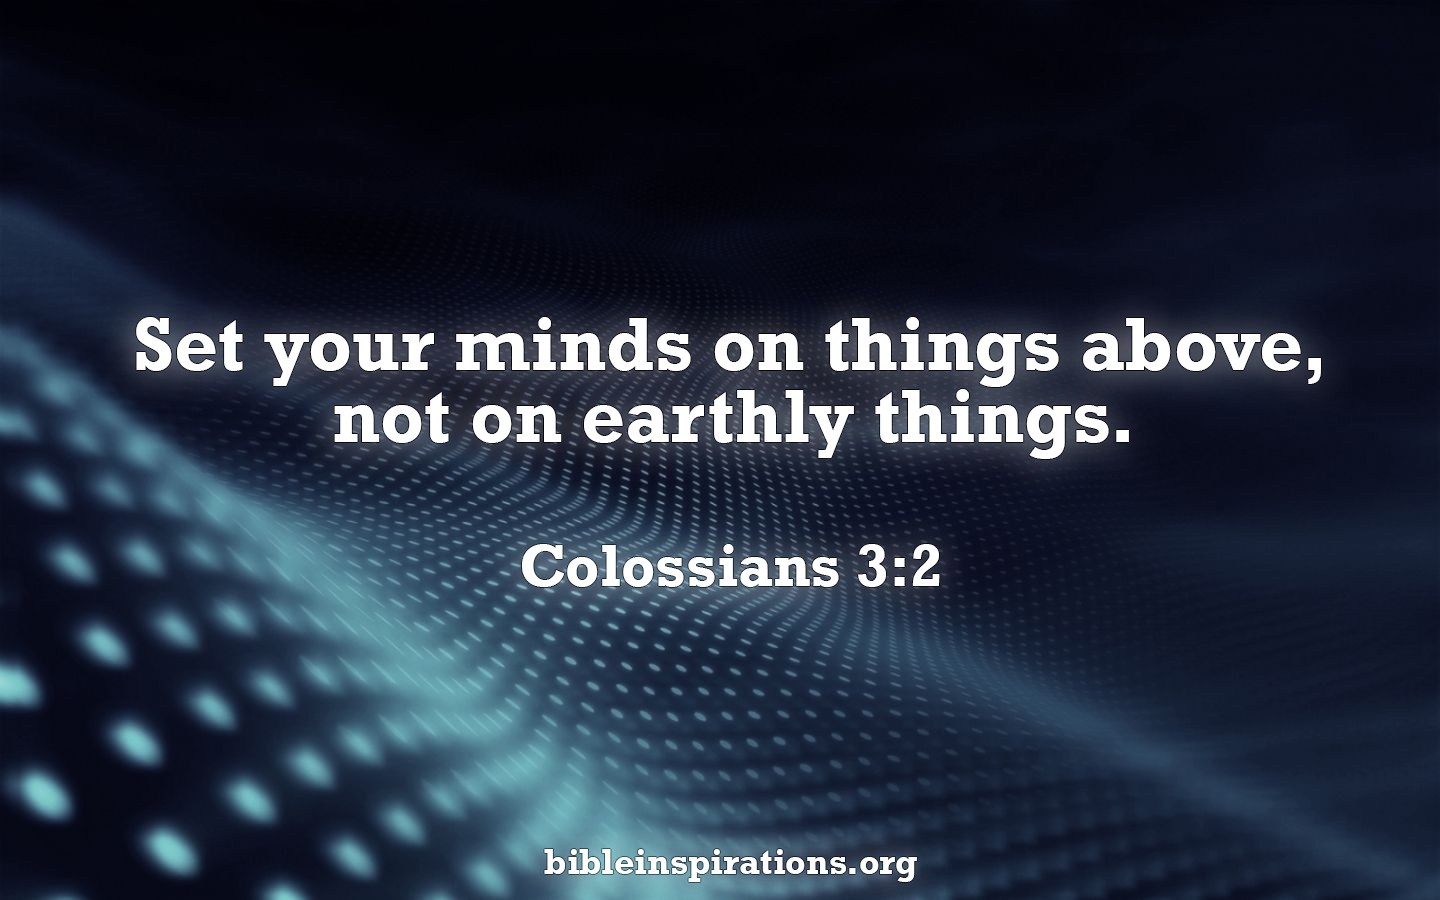 colossians-3-2